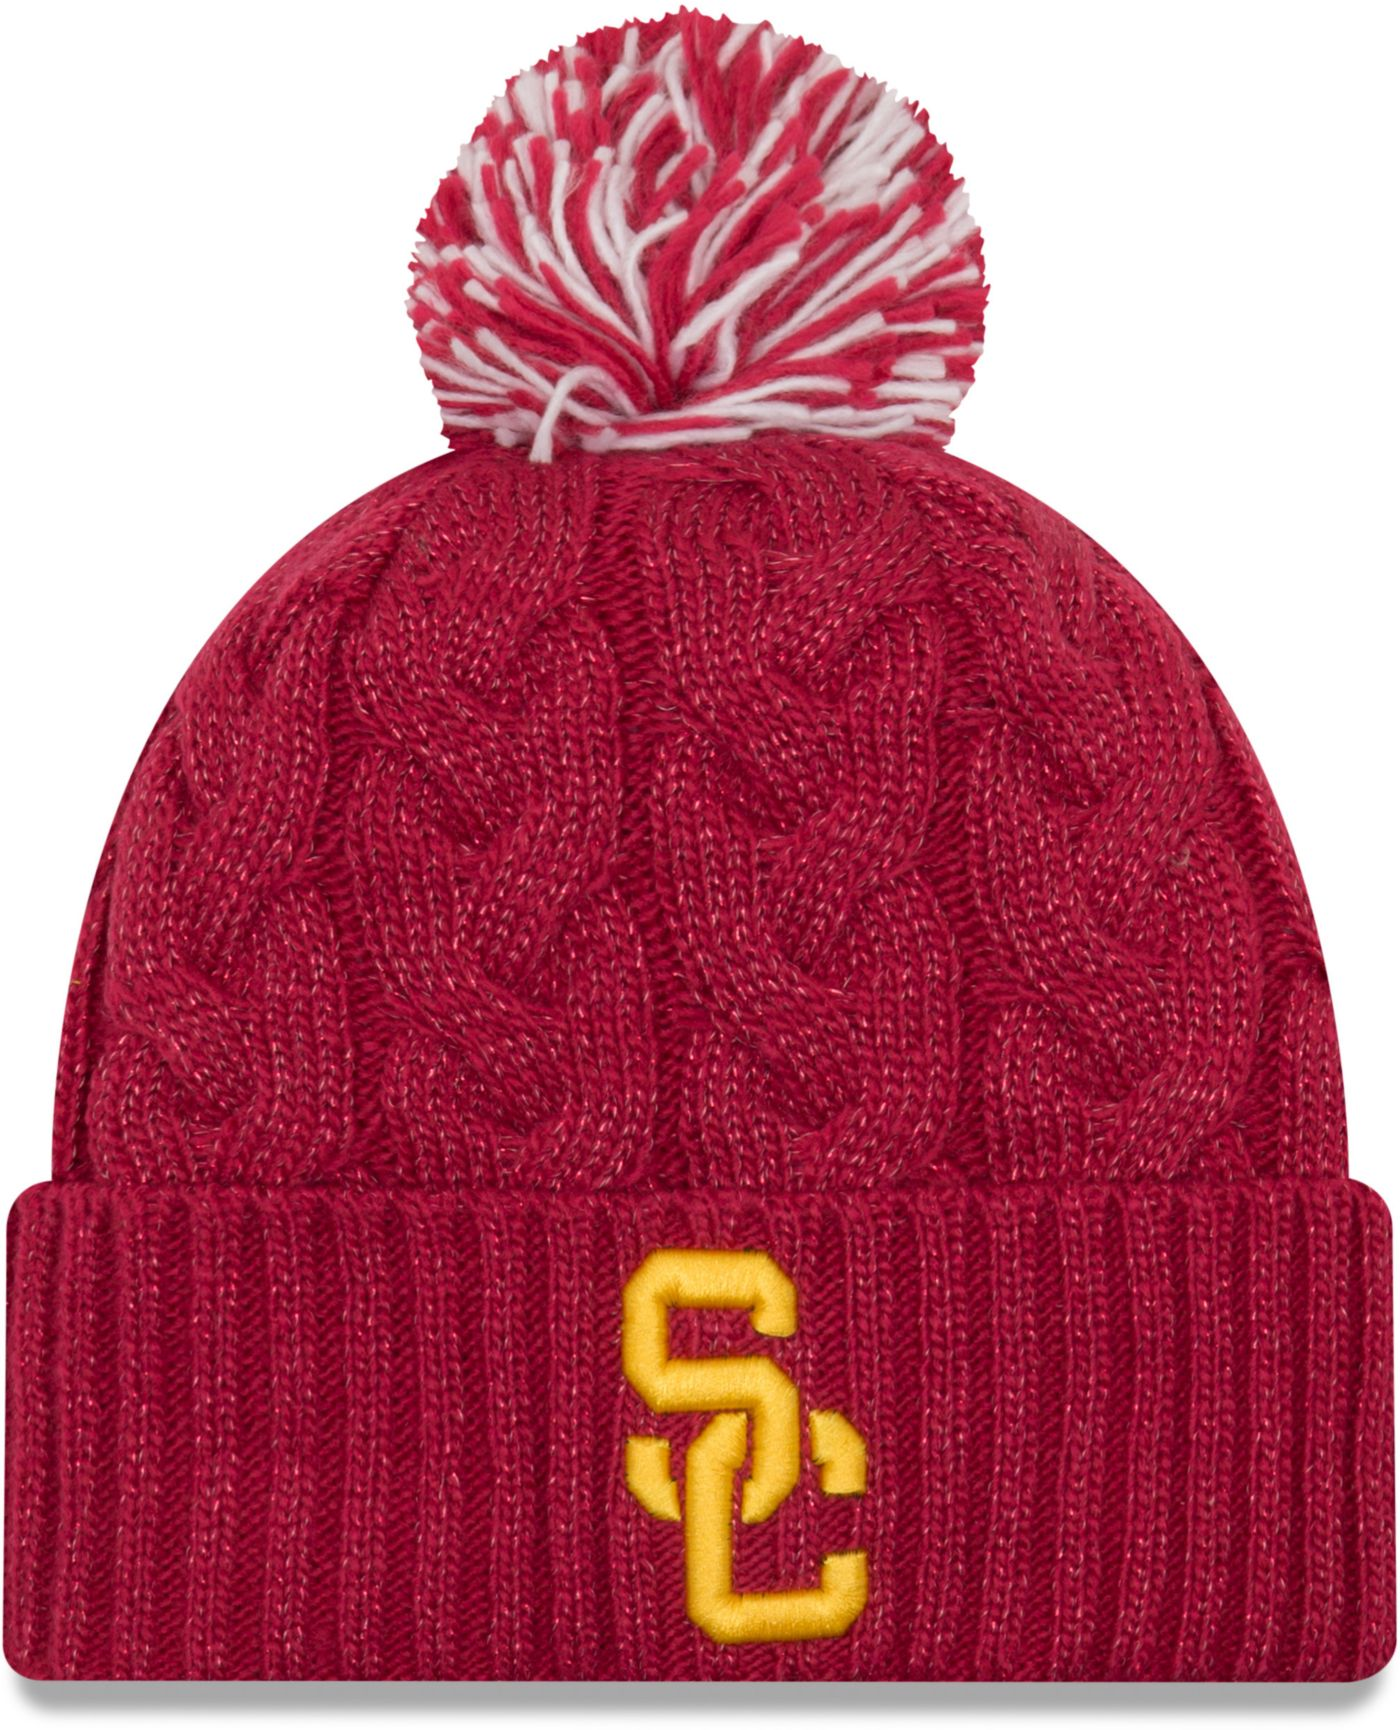 New Era Women's USC Trojans Cardinal Cozy Cable Pom Knit